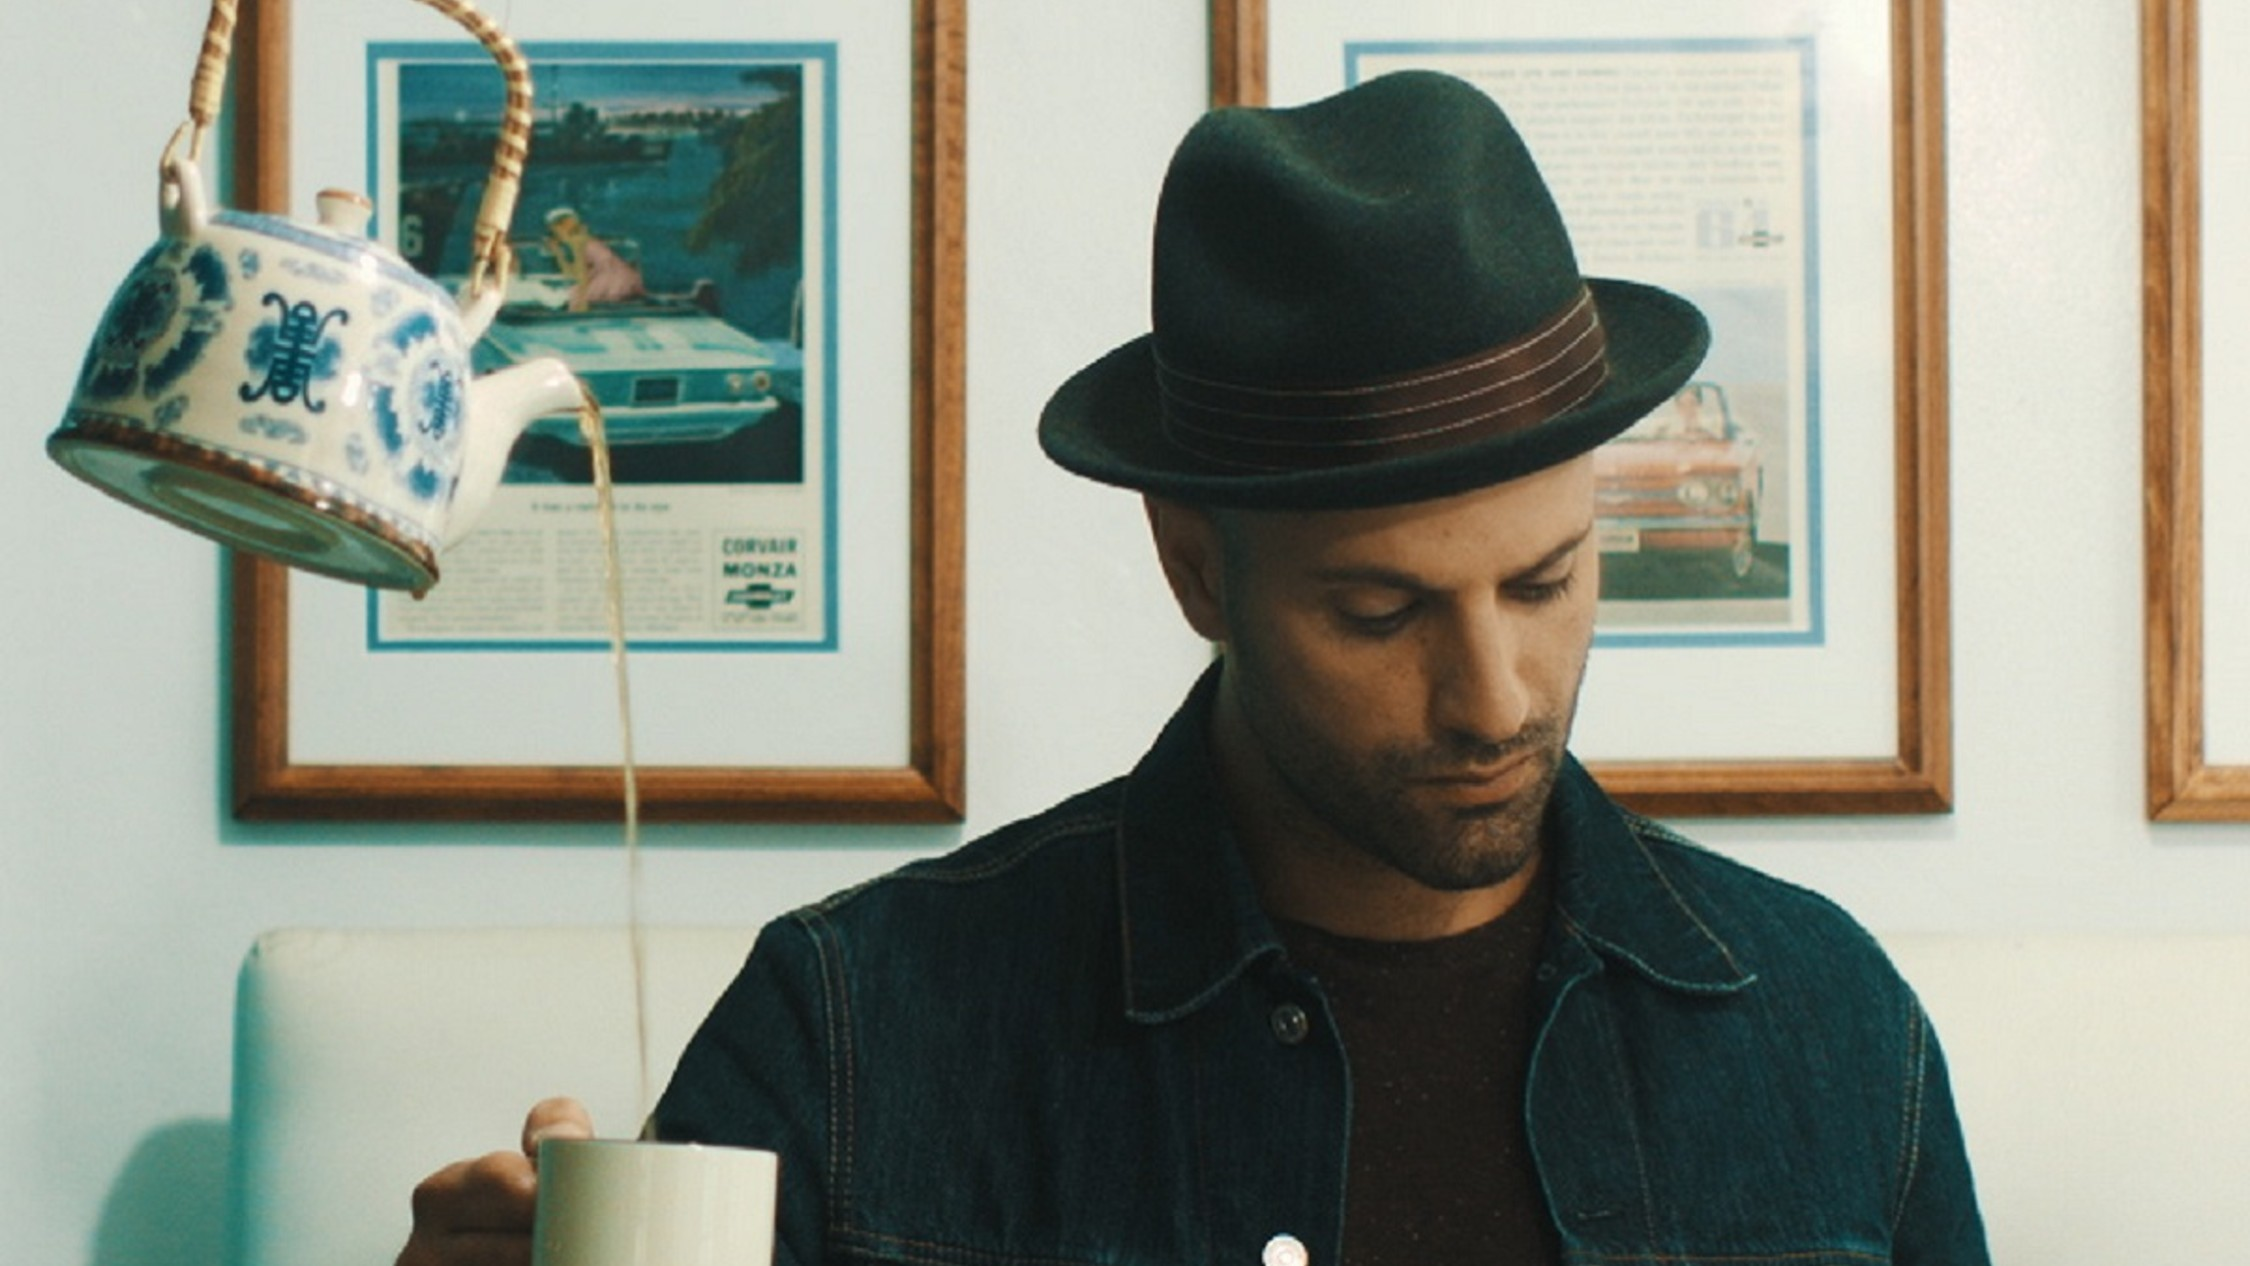 Magician James galea in a denim jacket and hat with a floating kettle filling his tea cup